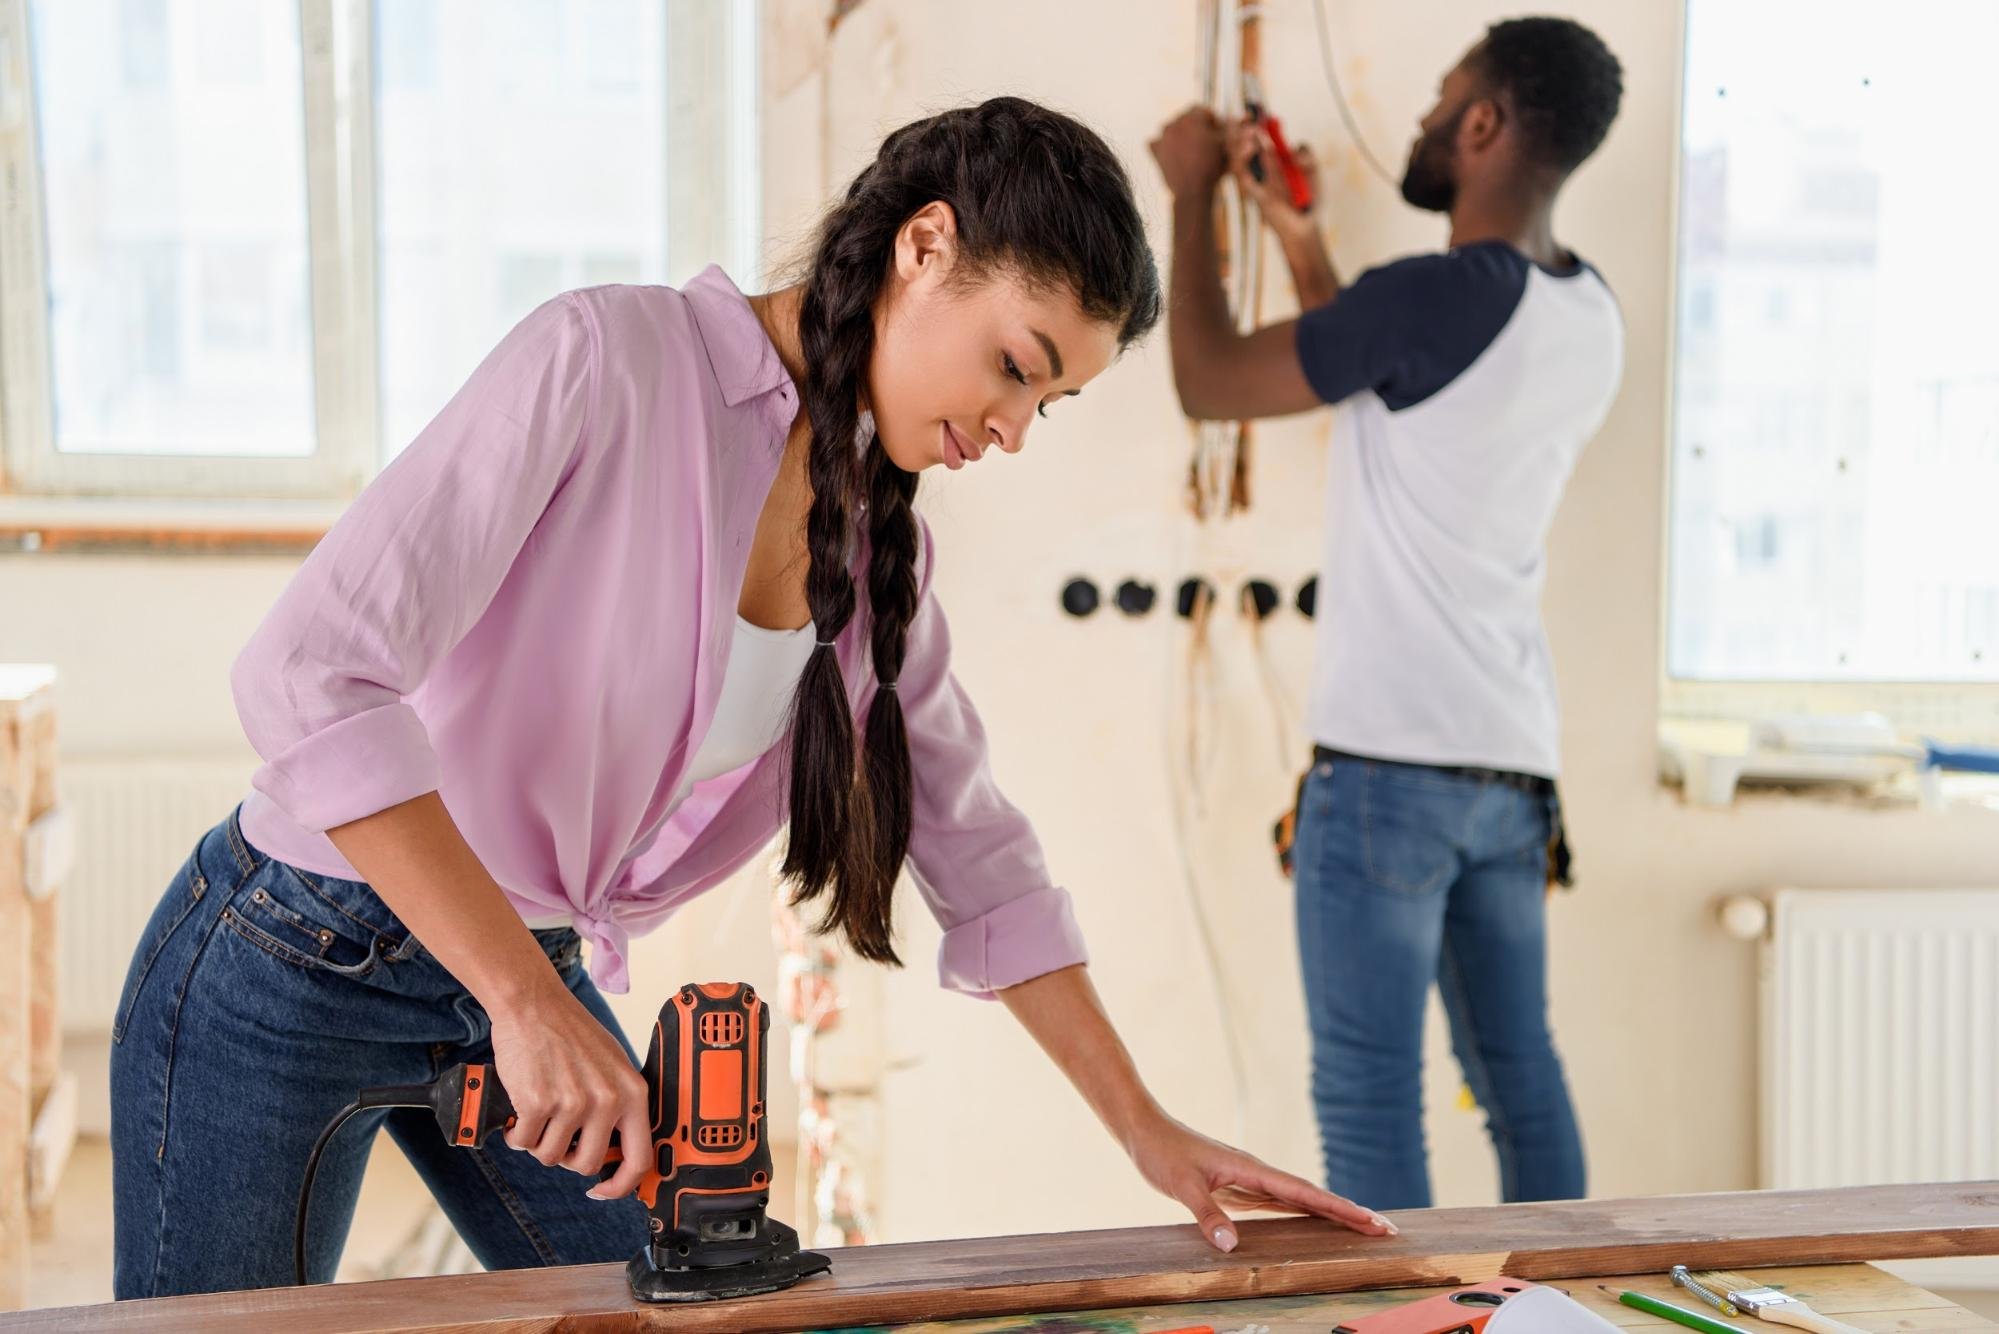 Man and woman renovate home together